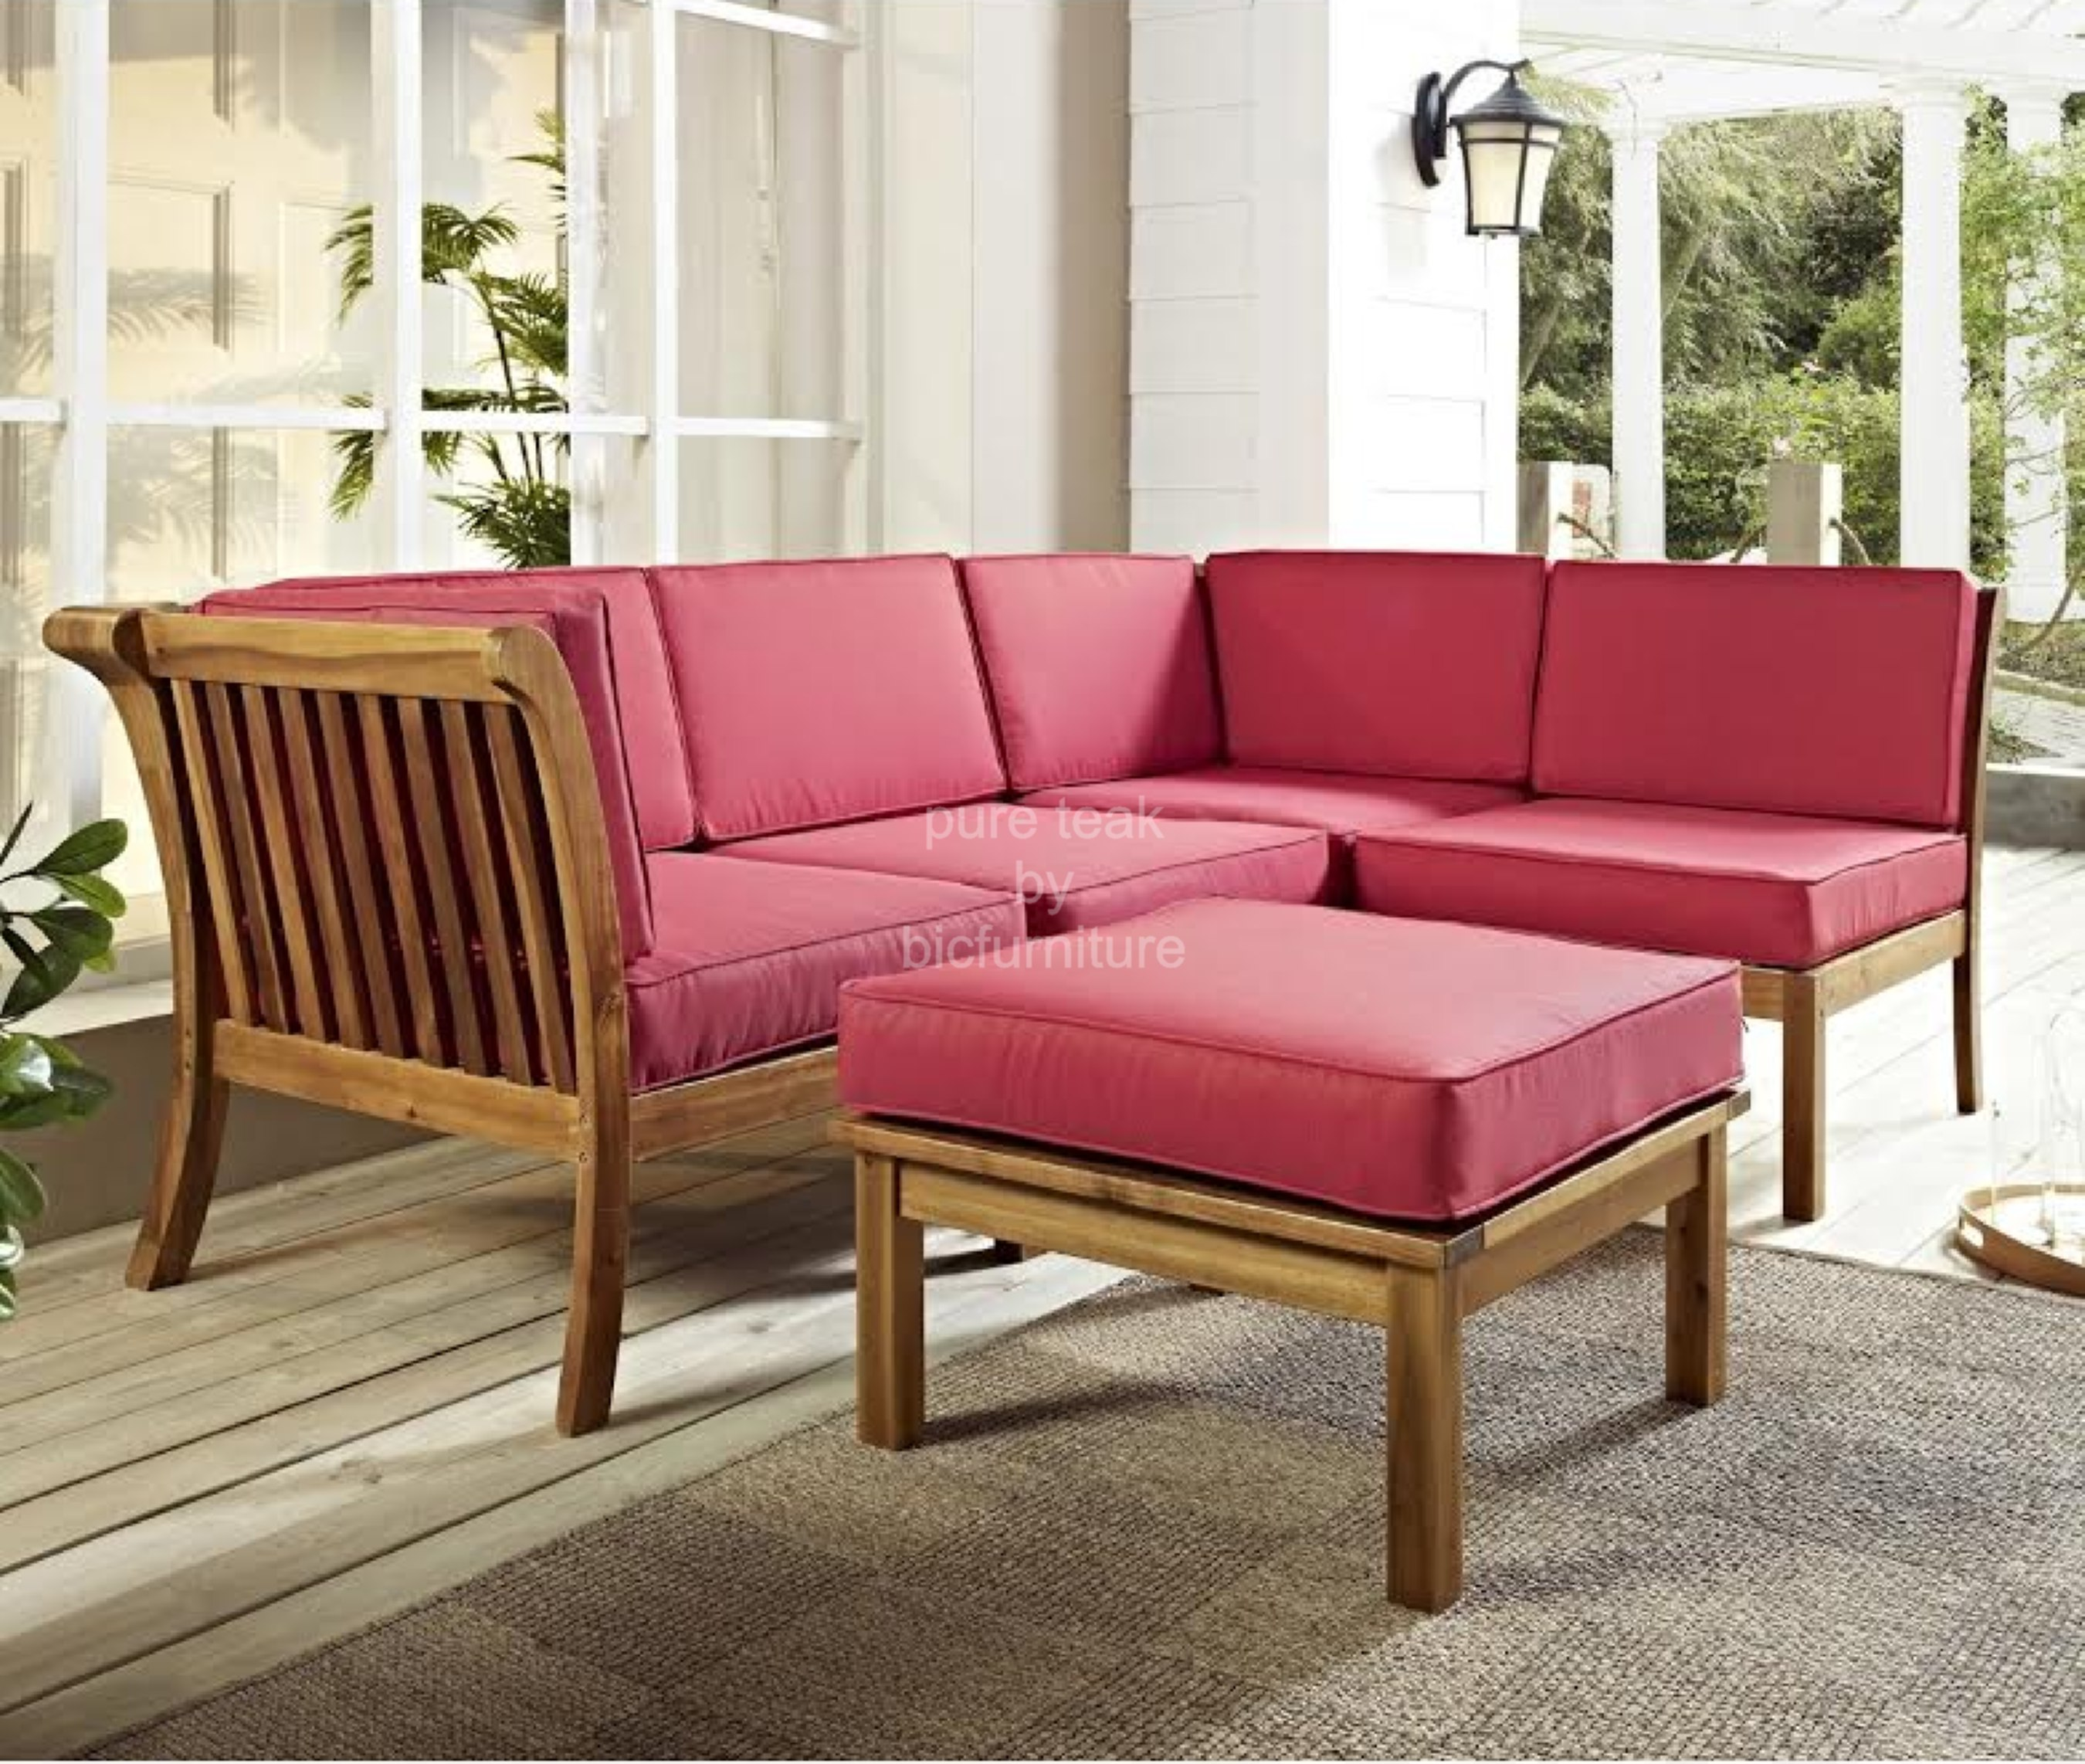 L Shape Sofas Archives Wooden Furniture in Teak wood Sofa